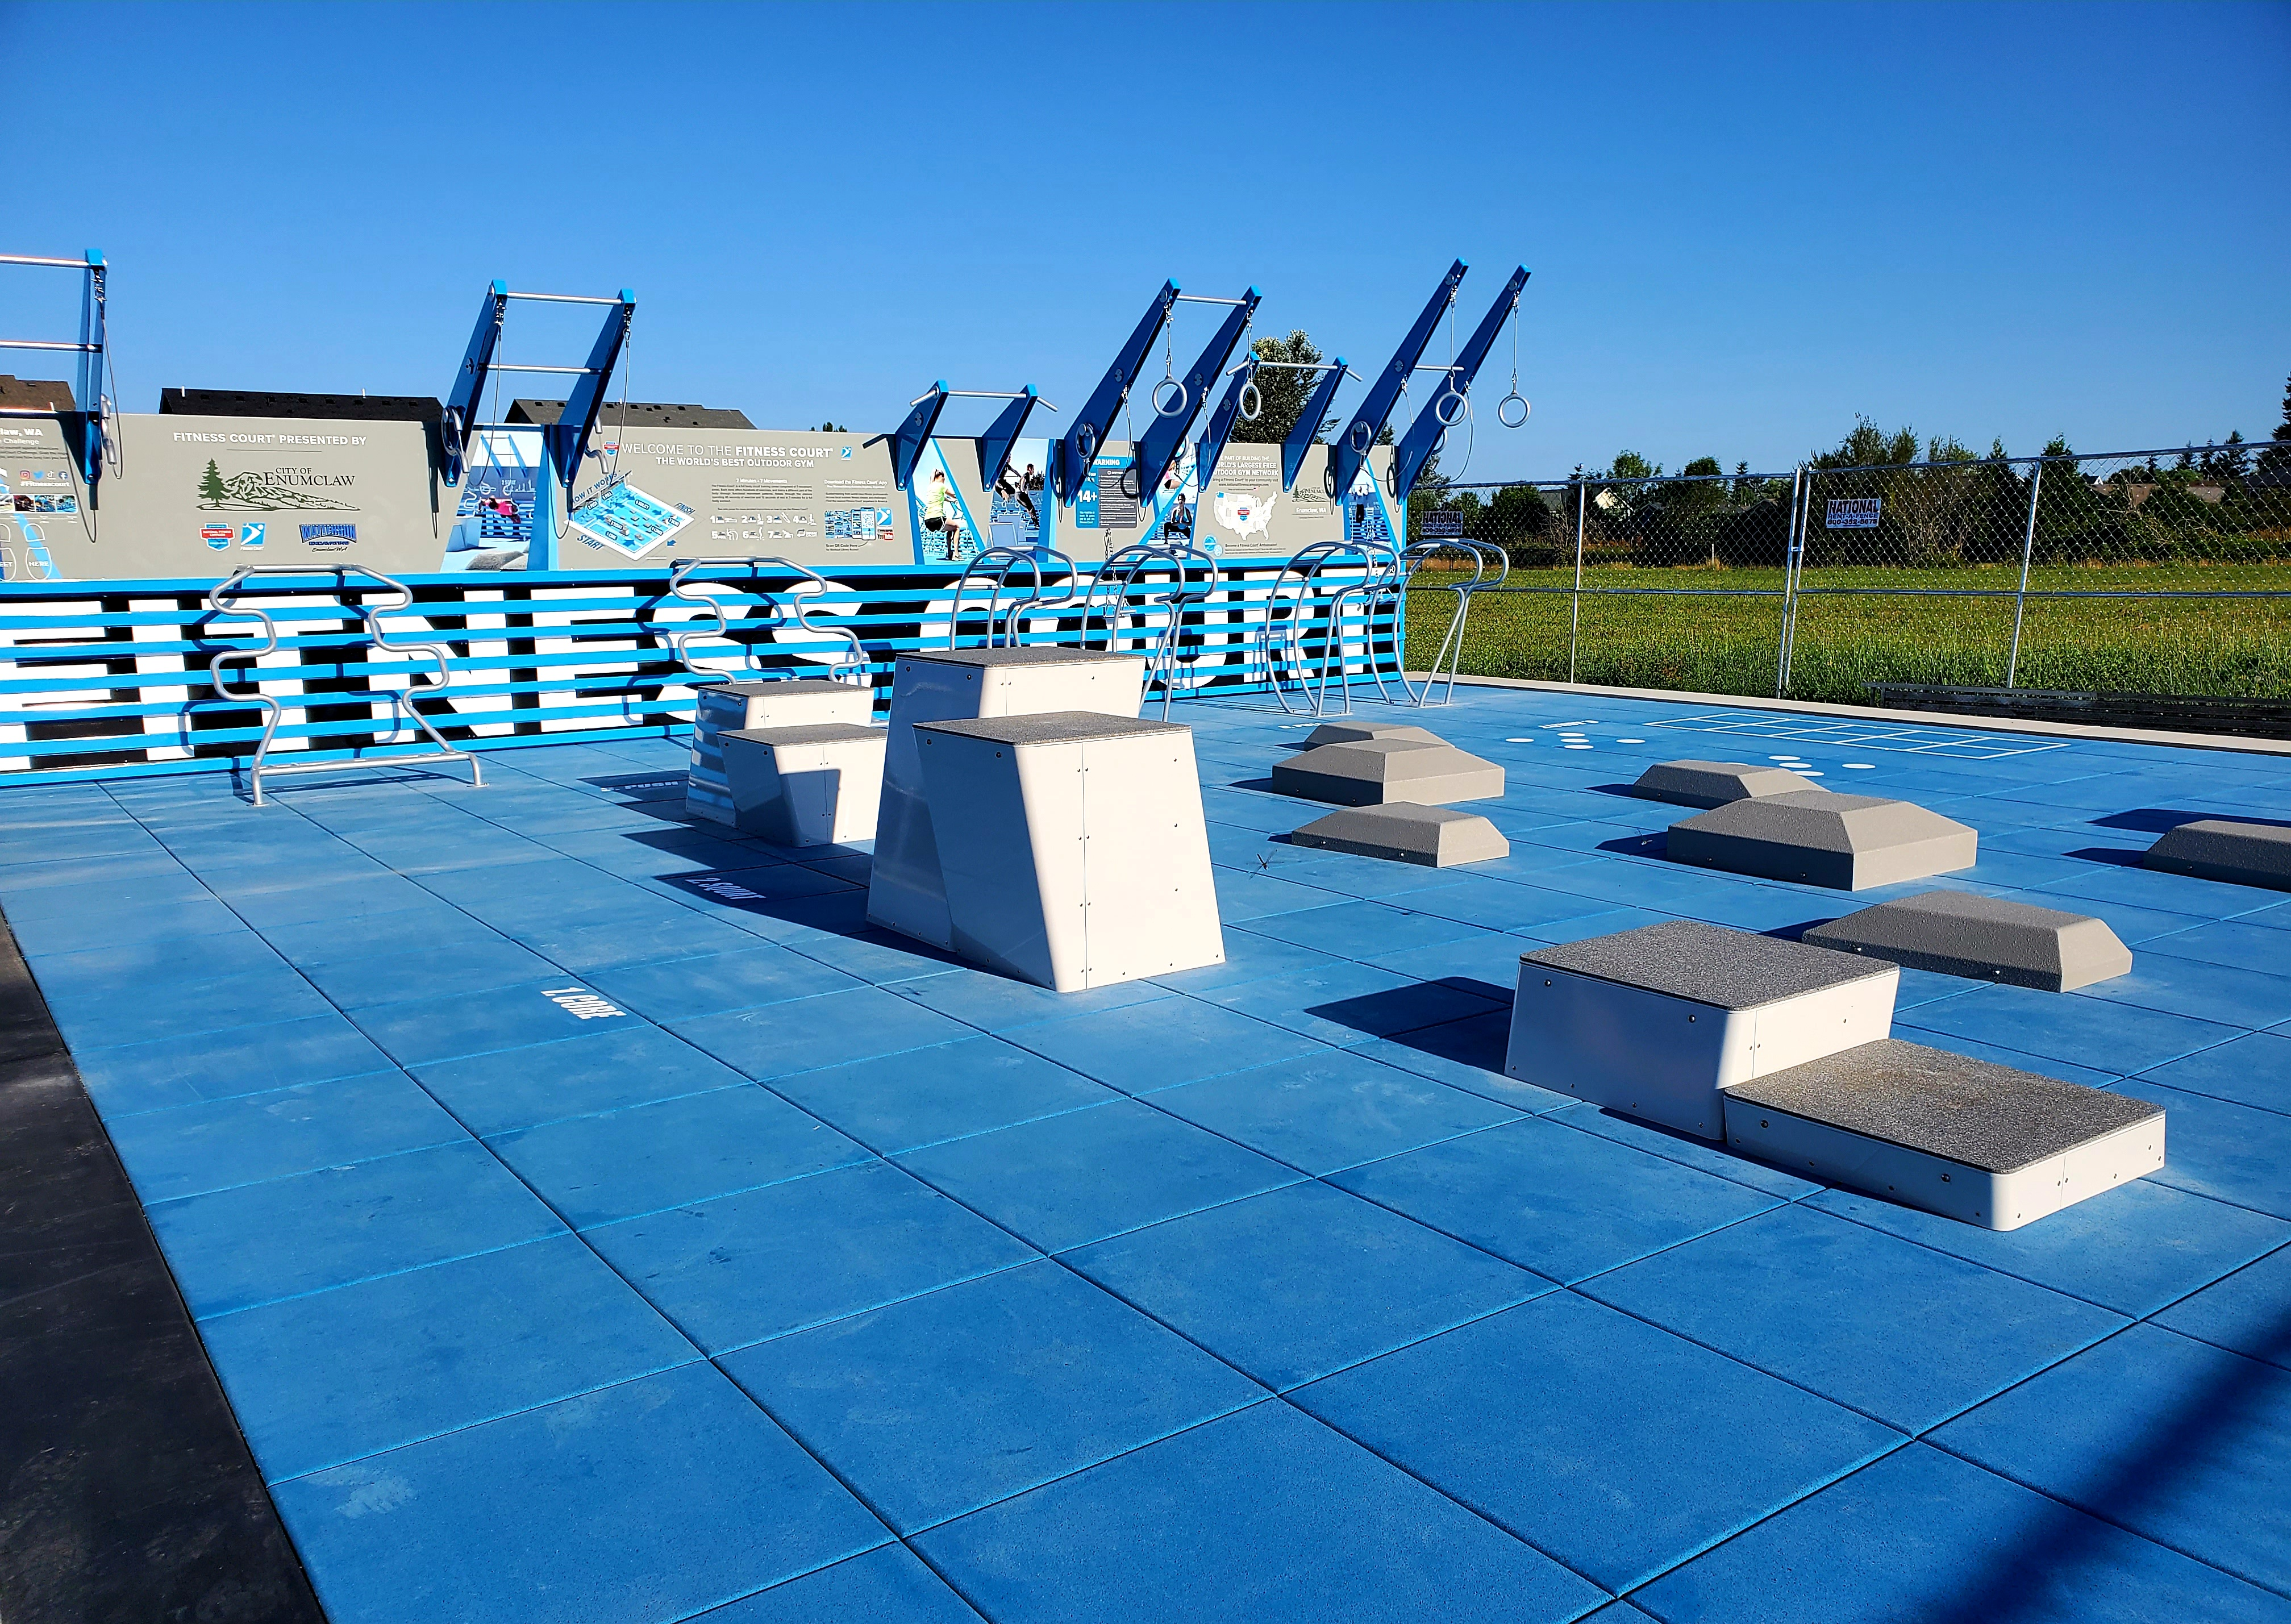 Outdoor fitness court featuring metal bars and rings, as well as concrete platforms of various heights